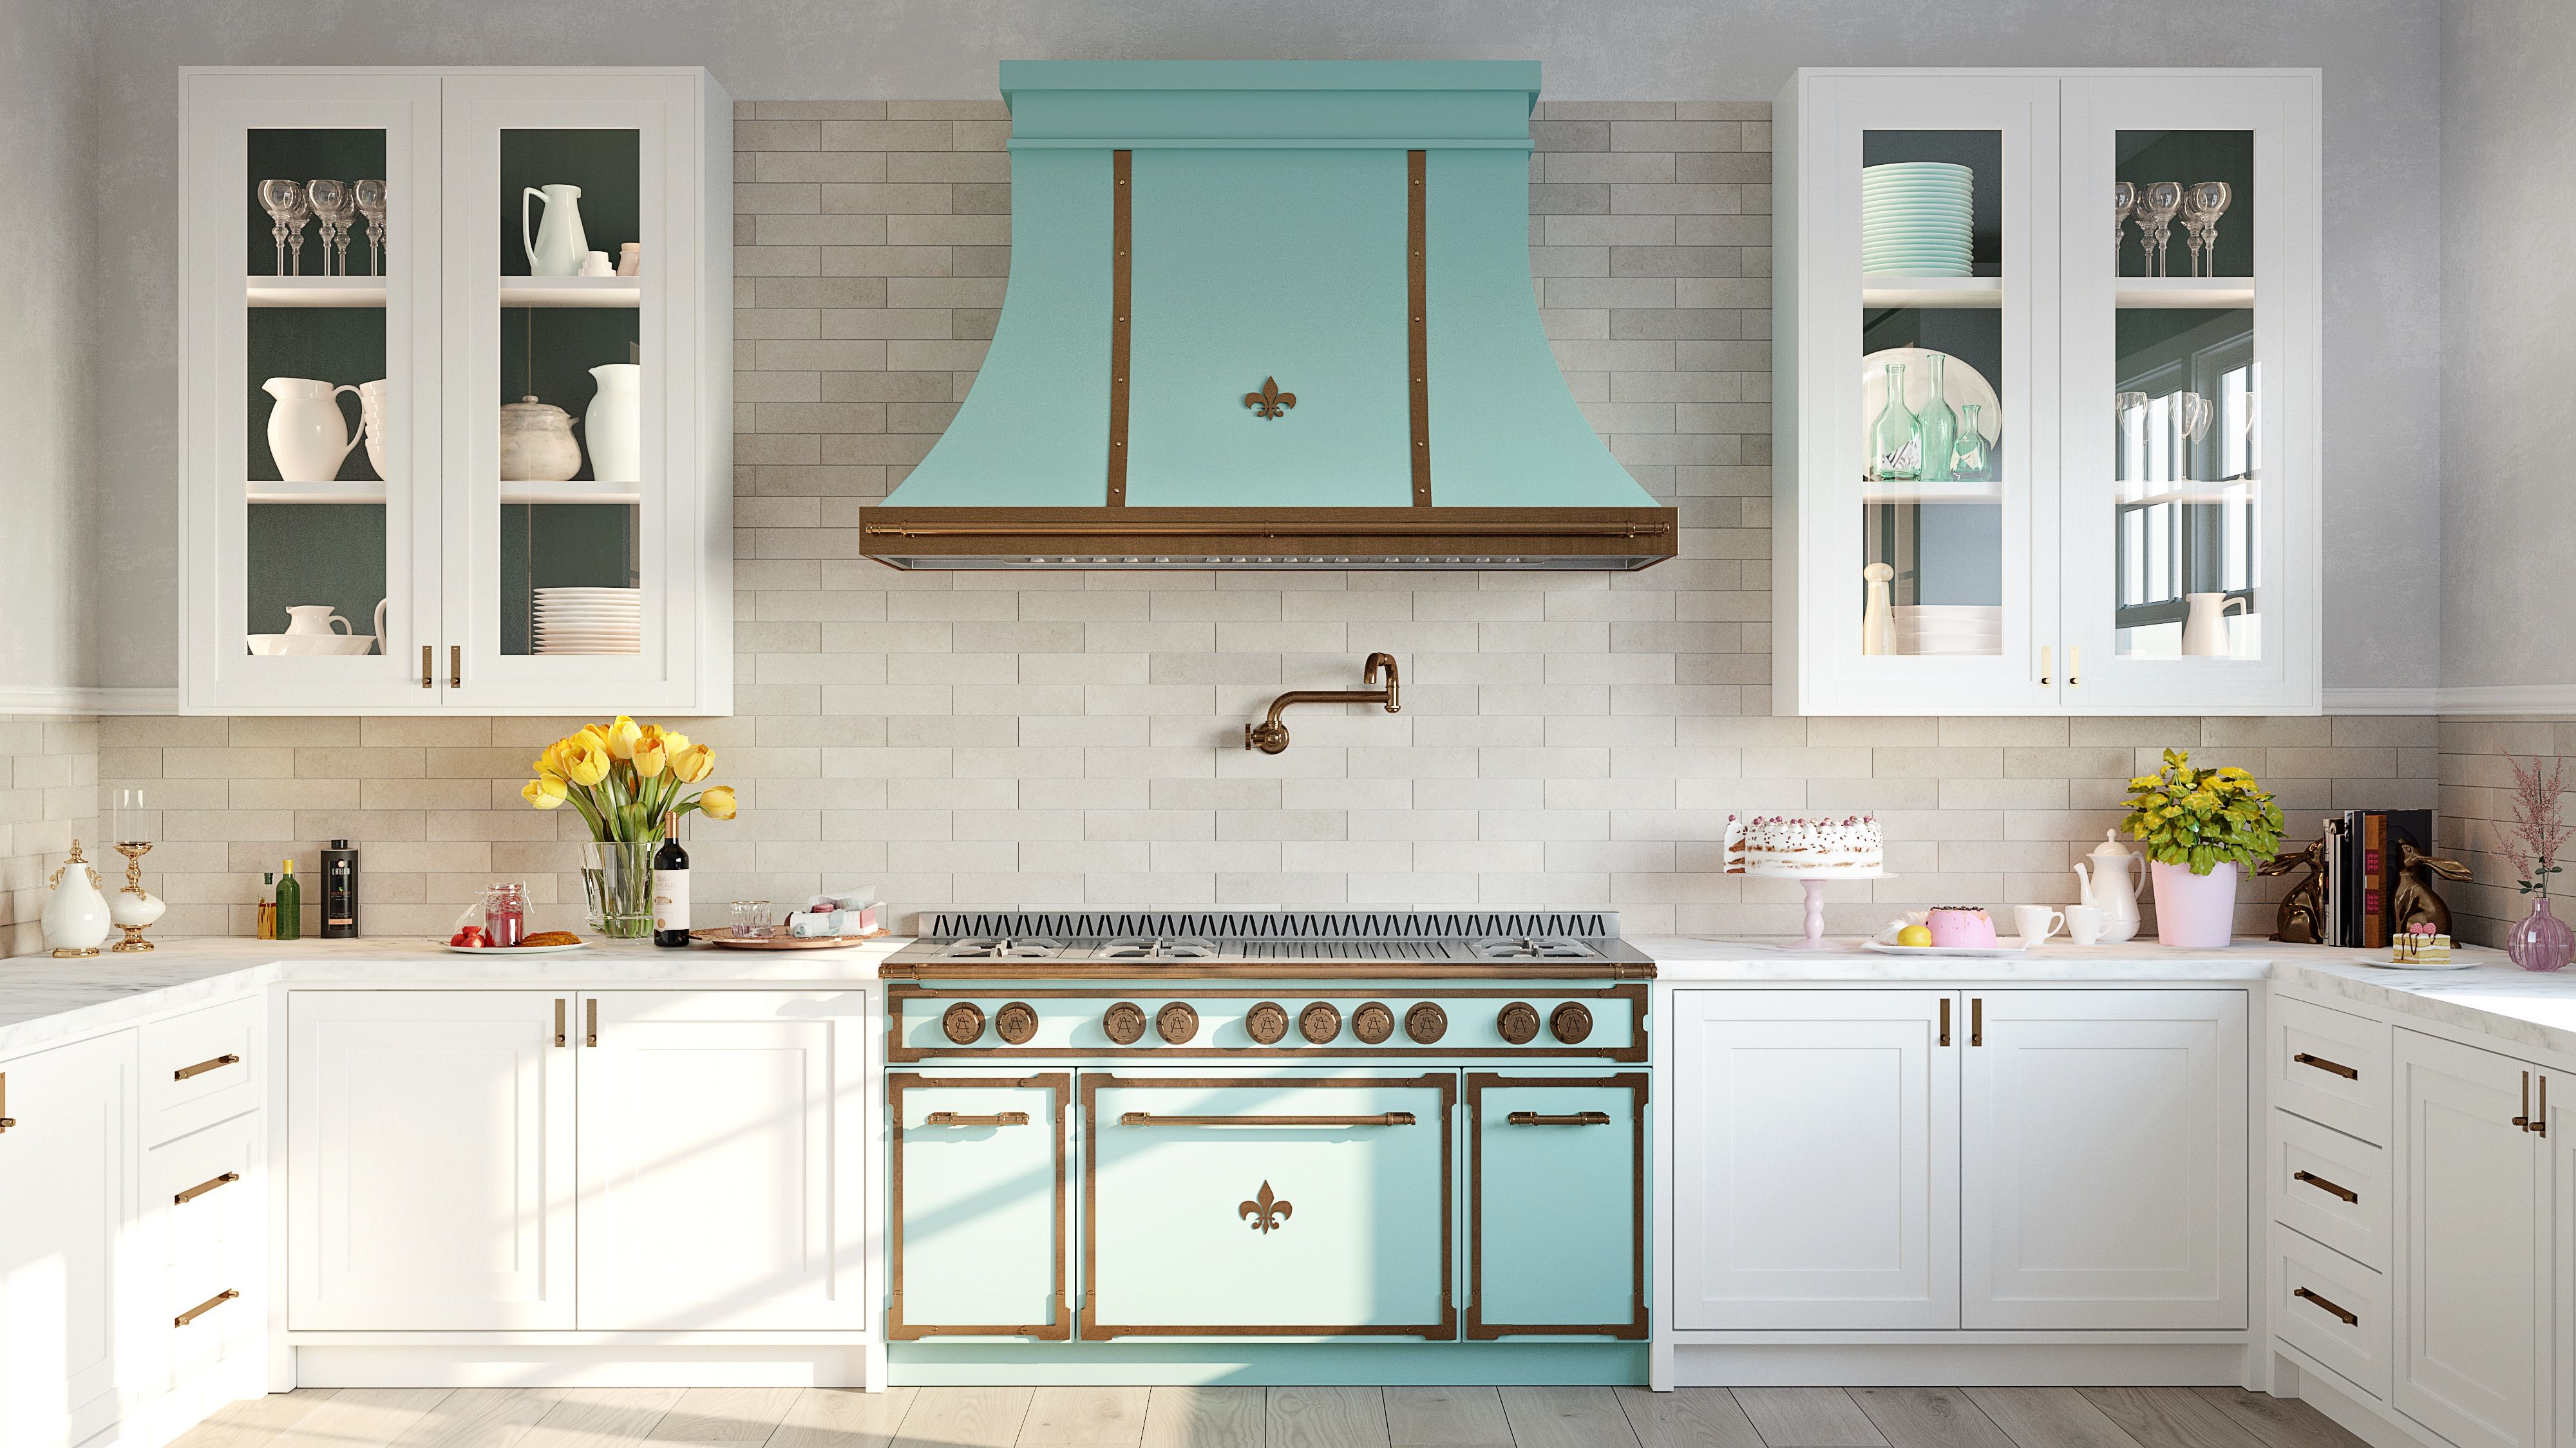 Pin On Kitchens Dreams Are Made Of